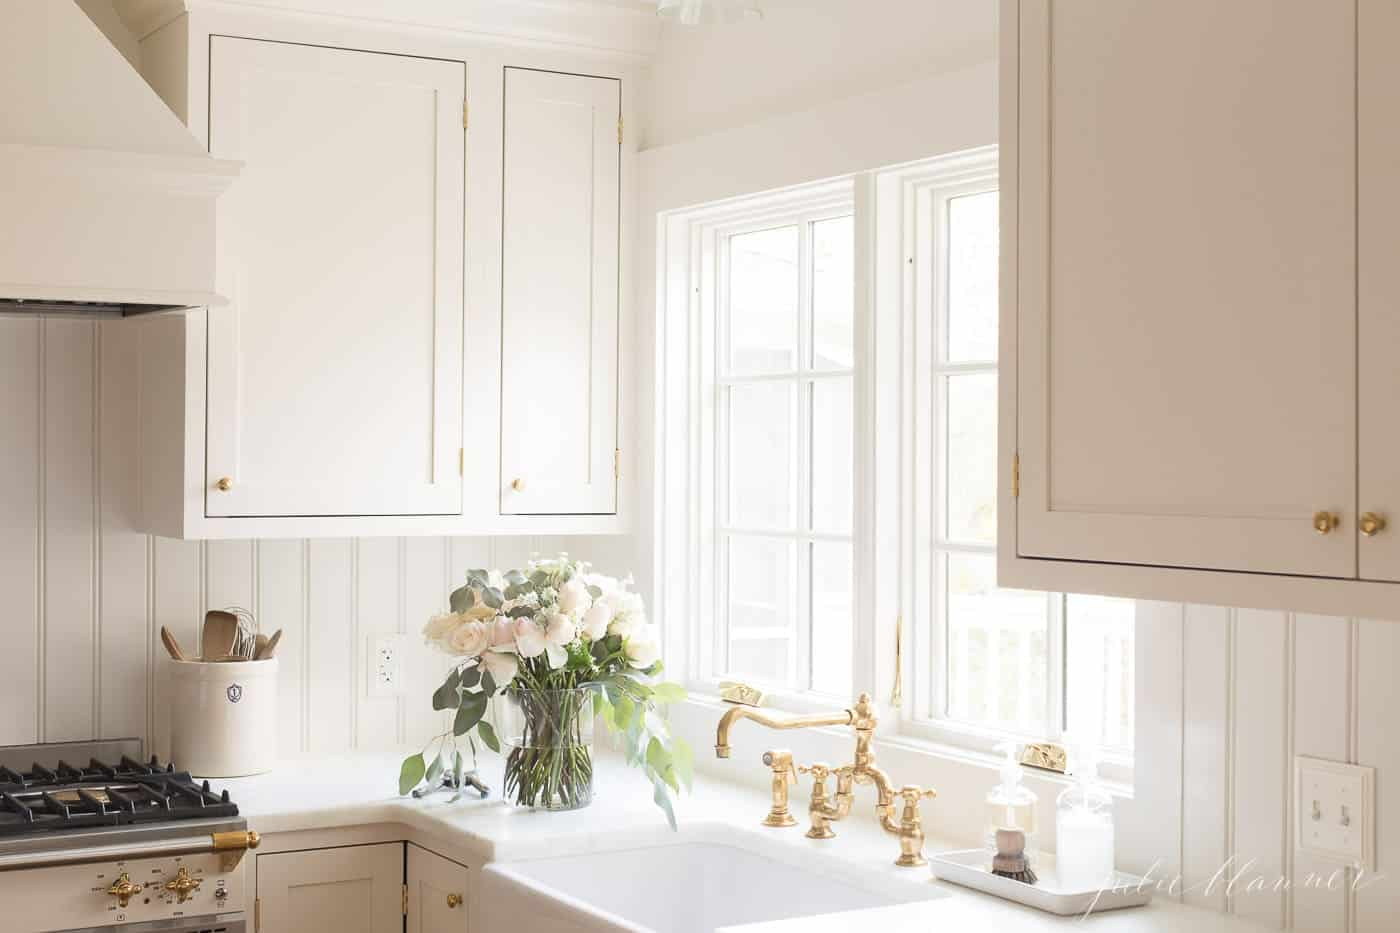 A cream kitchen with shaker cabinets, in a kitchen cabinet knob placement guide.